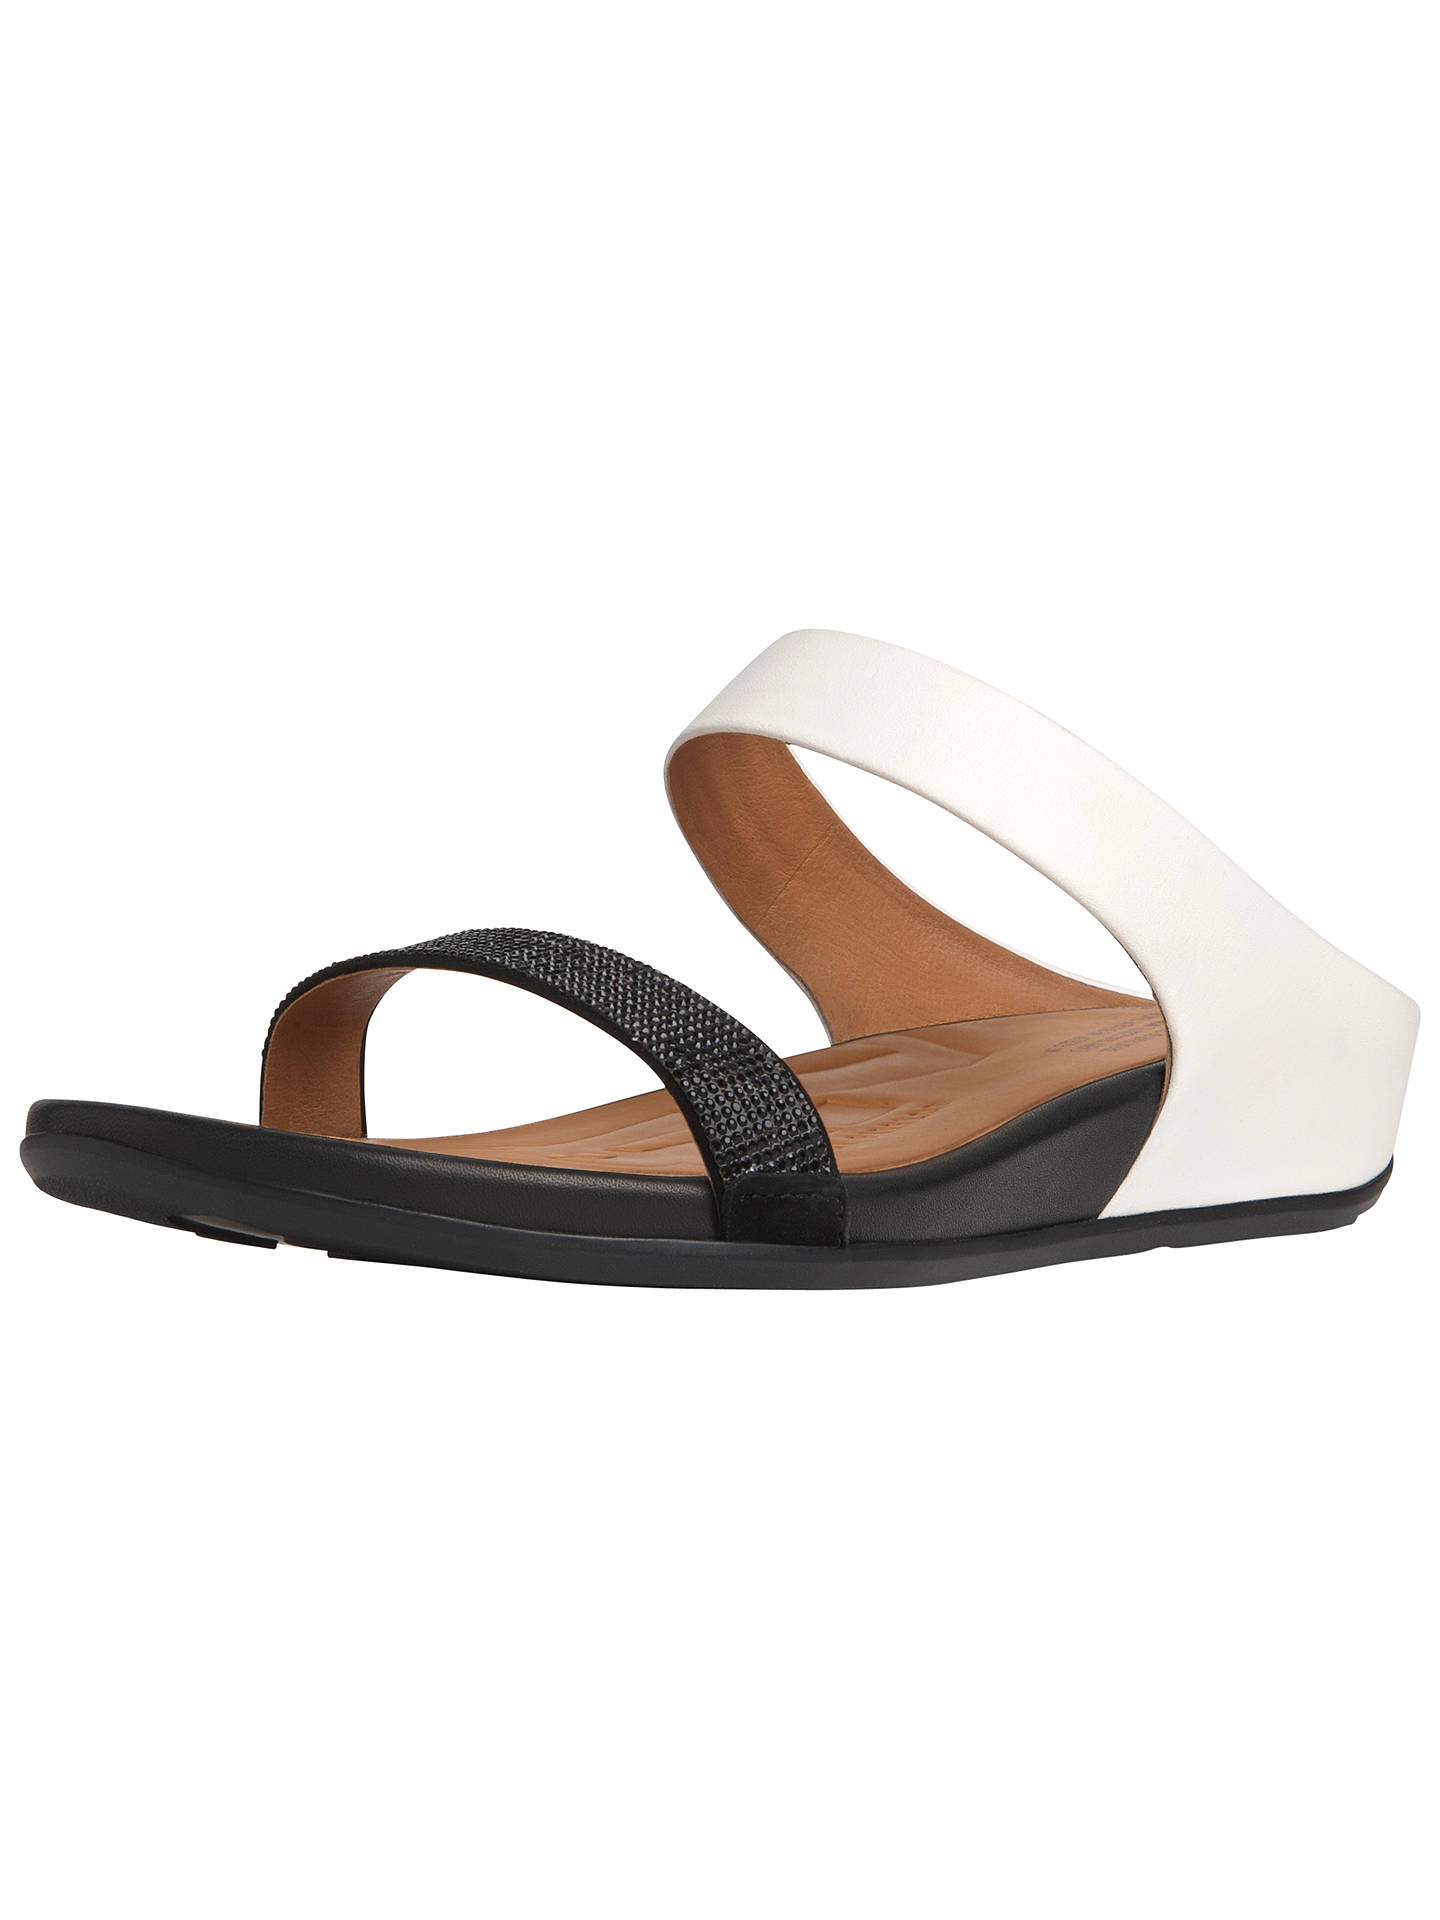 0ecd26060 Buy FitFlop Banda Crystal Slide Leather Sandals